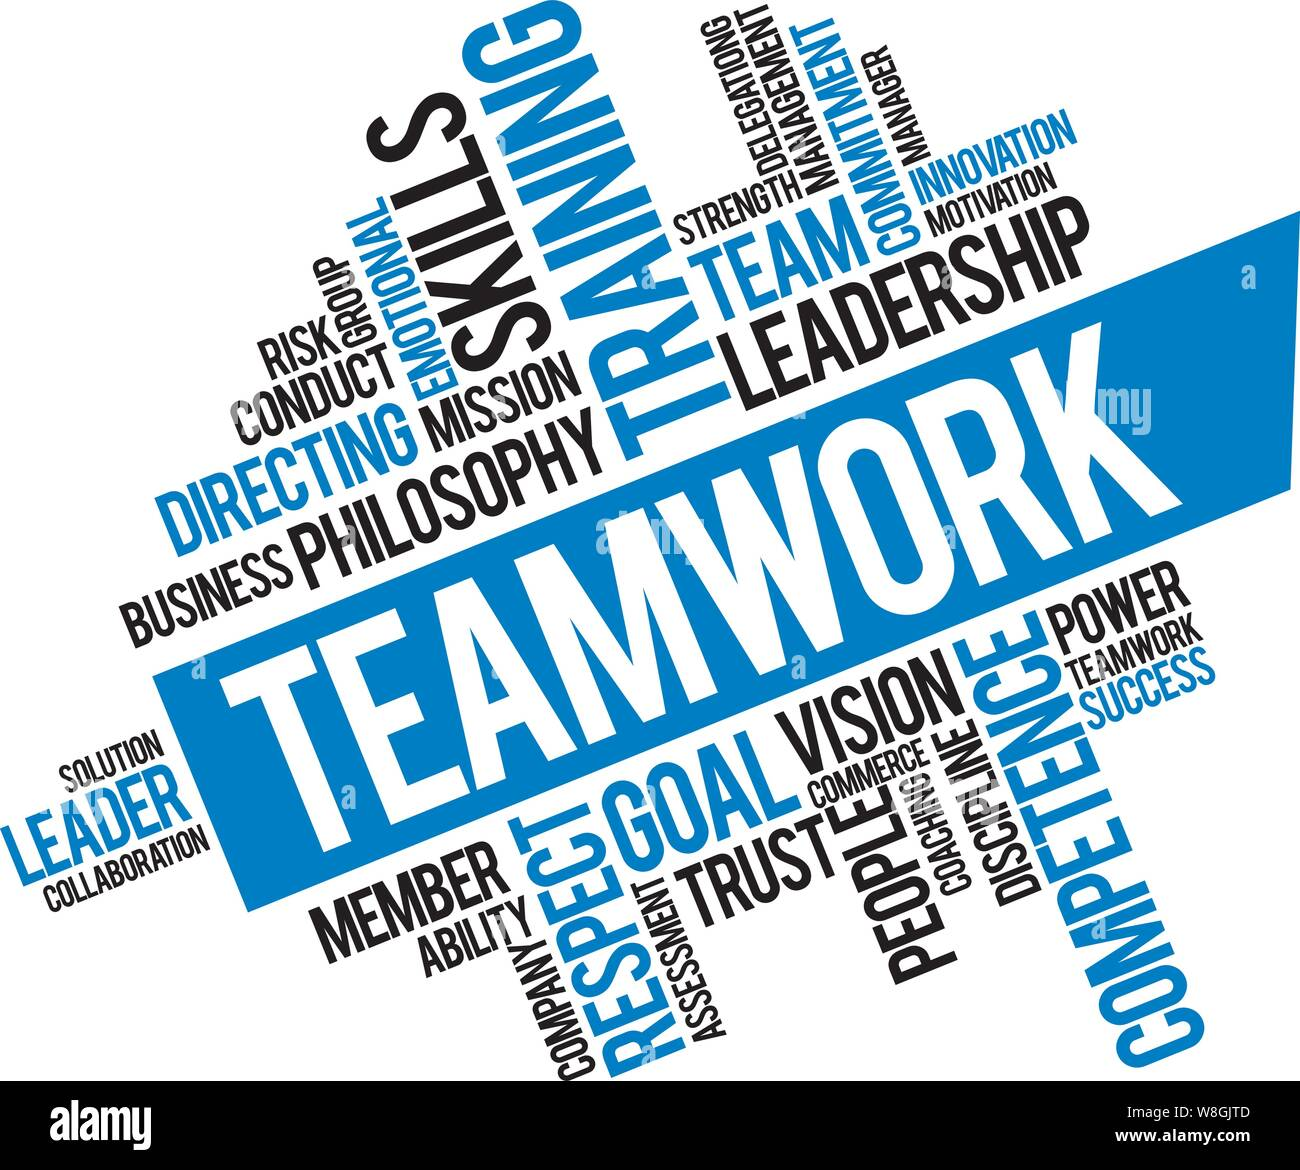 Office Team Work Strategy Tips Inspirational Quotes And Motivational Art Lettering Composition Blue Vector Stock Vector Image Art Alamy